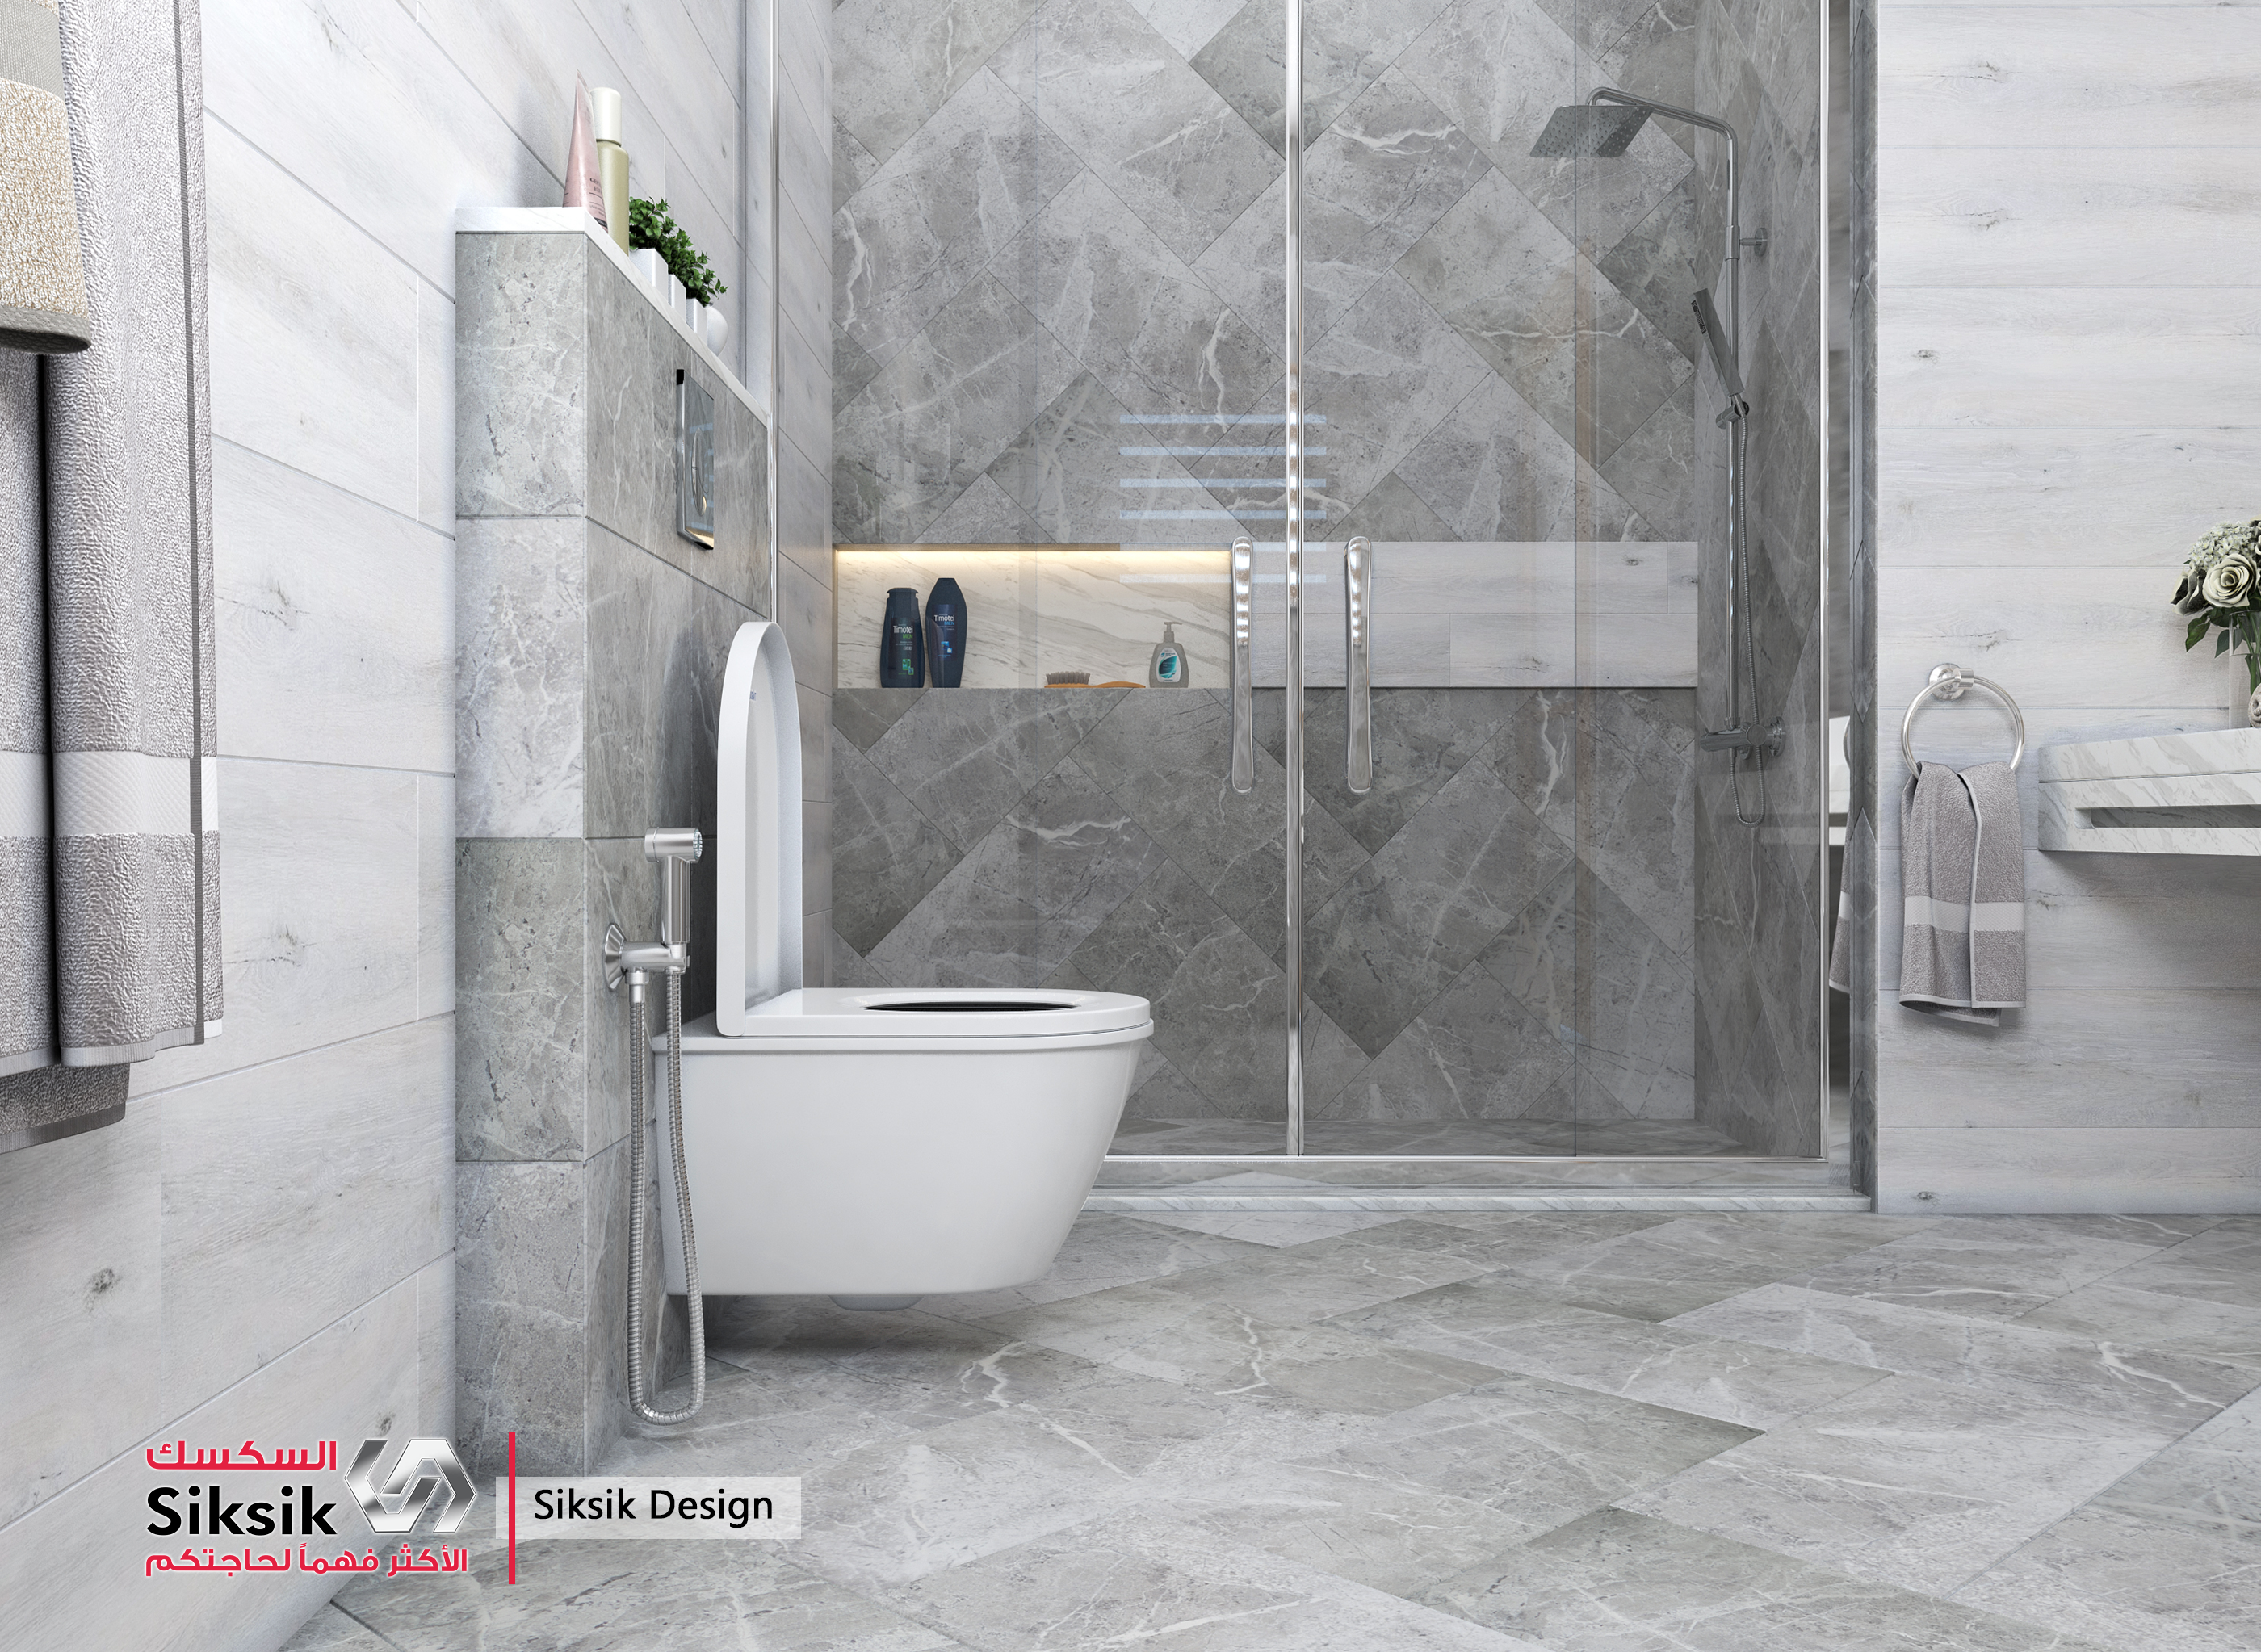 Bathroom Interior Design Using 3dmax V Ray Rendering To Show The Realistic Of Ceramic Tile Turkish Til Bathroom Interior Design Bathroom Interior Turkish Tiles